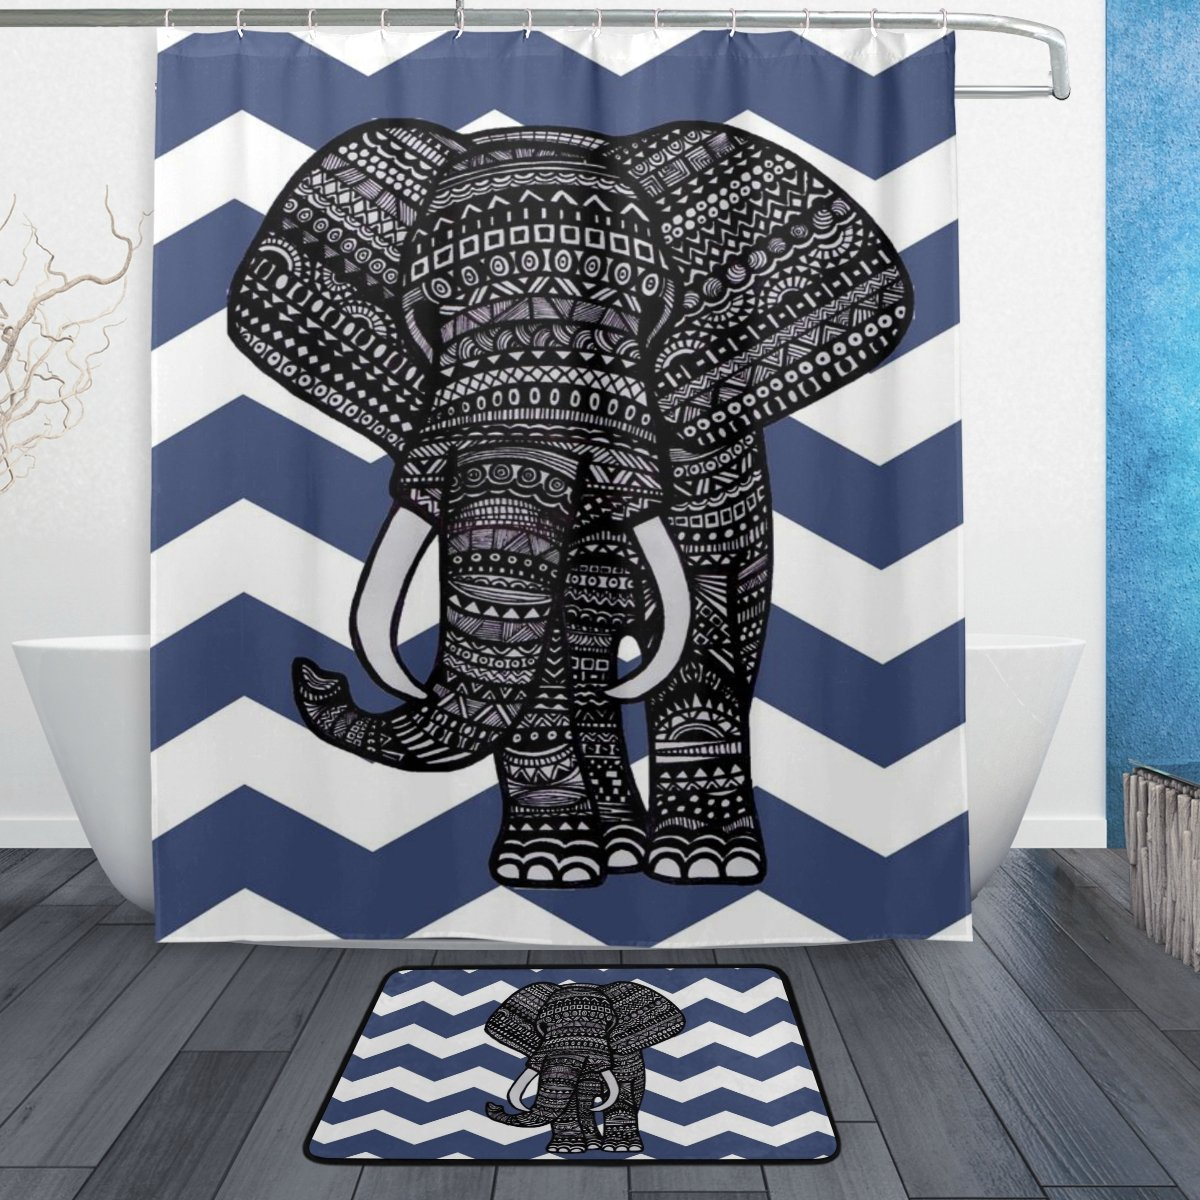 BAIHUISHOP Navy Blue Chevron Aztec Elephant PatternMachine Washable for Everyday Use,Includes 60x72 Inch Waterproof Shower Curtain, 12 Shower Hooks and 1 Non-slip Bathroom Rug Carpet